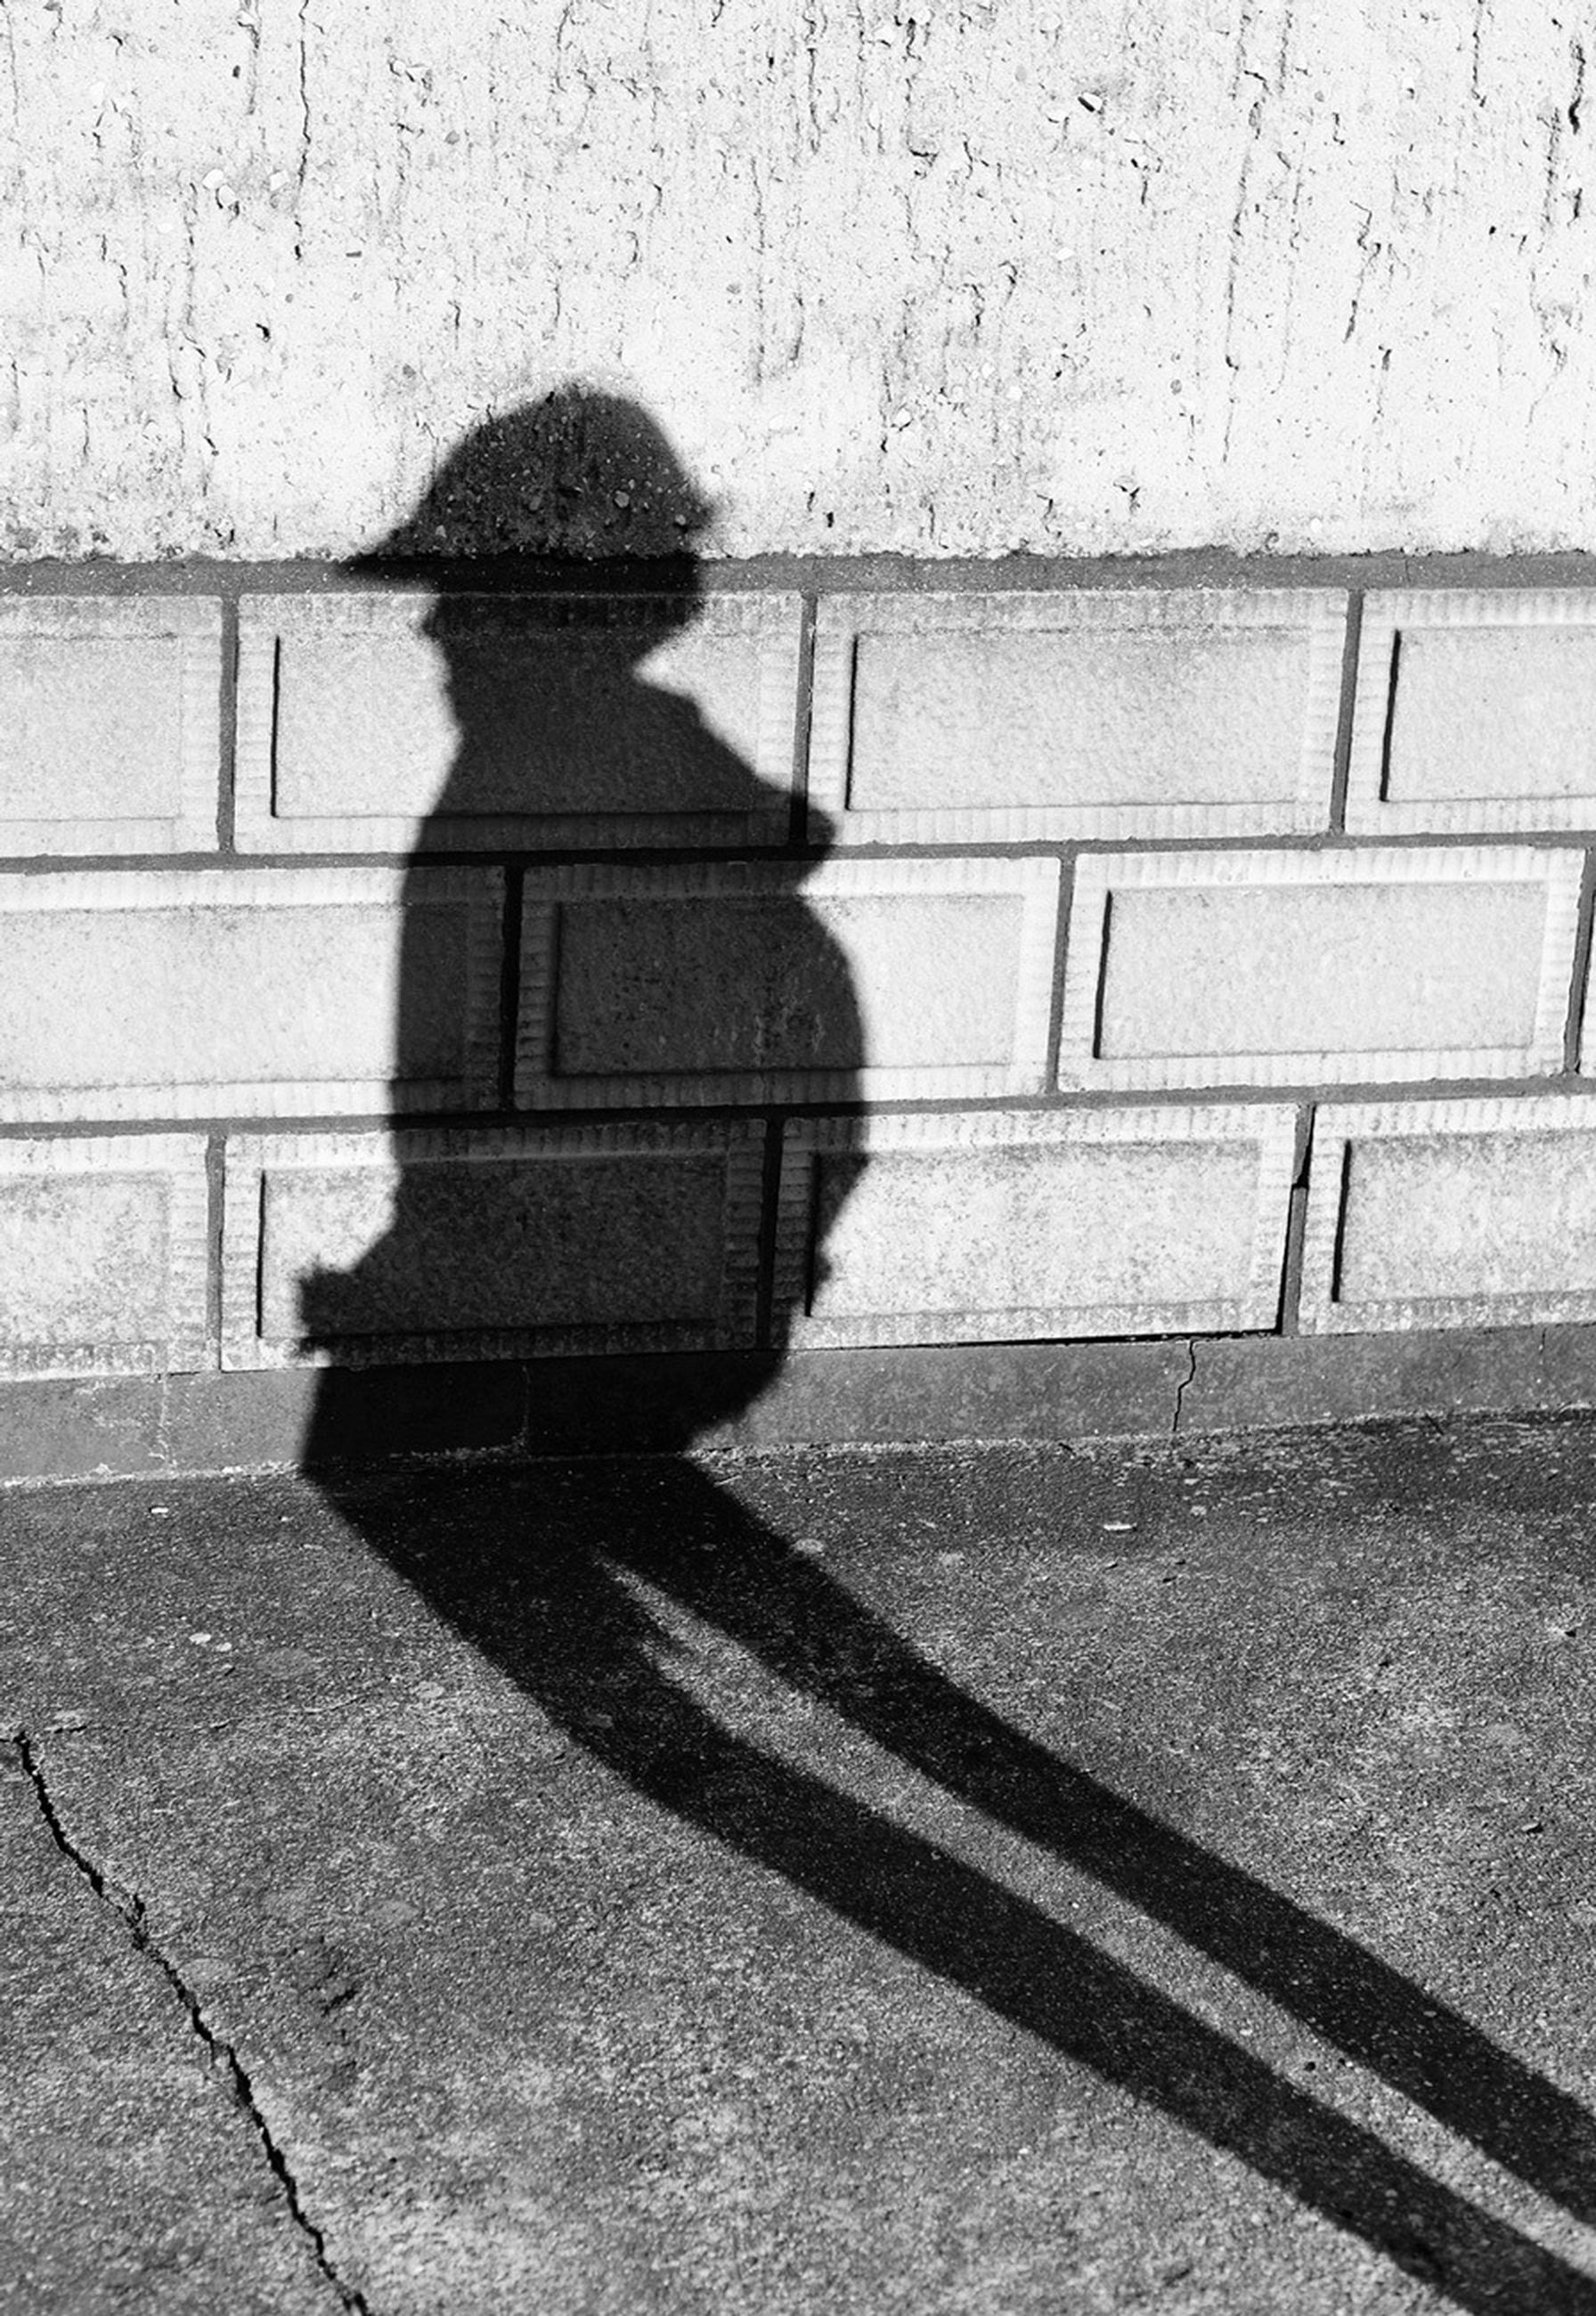 shadow, building exterior, built structure, architecture, street, silhouette, sunlight, focus on shadow, walking, men, sidewalk, unrecognizable person, lifestyles, side view, city, day, outdoors, leisure activity